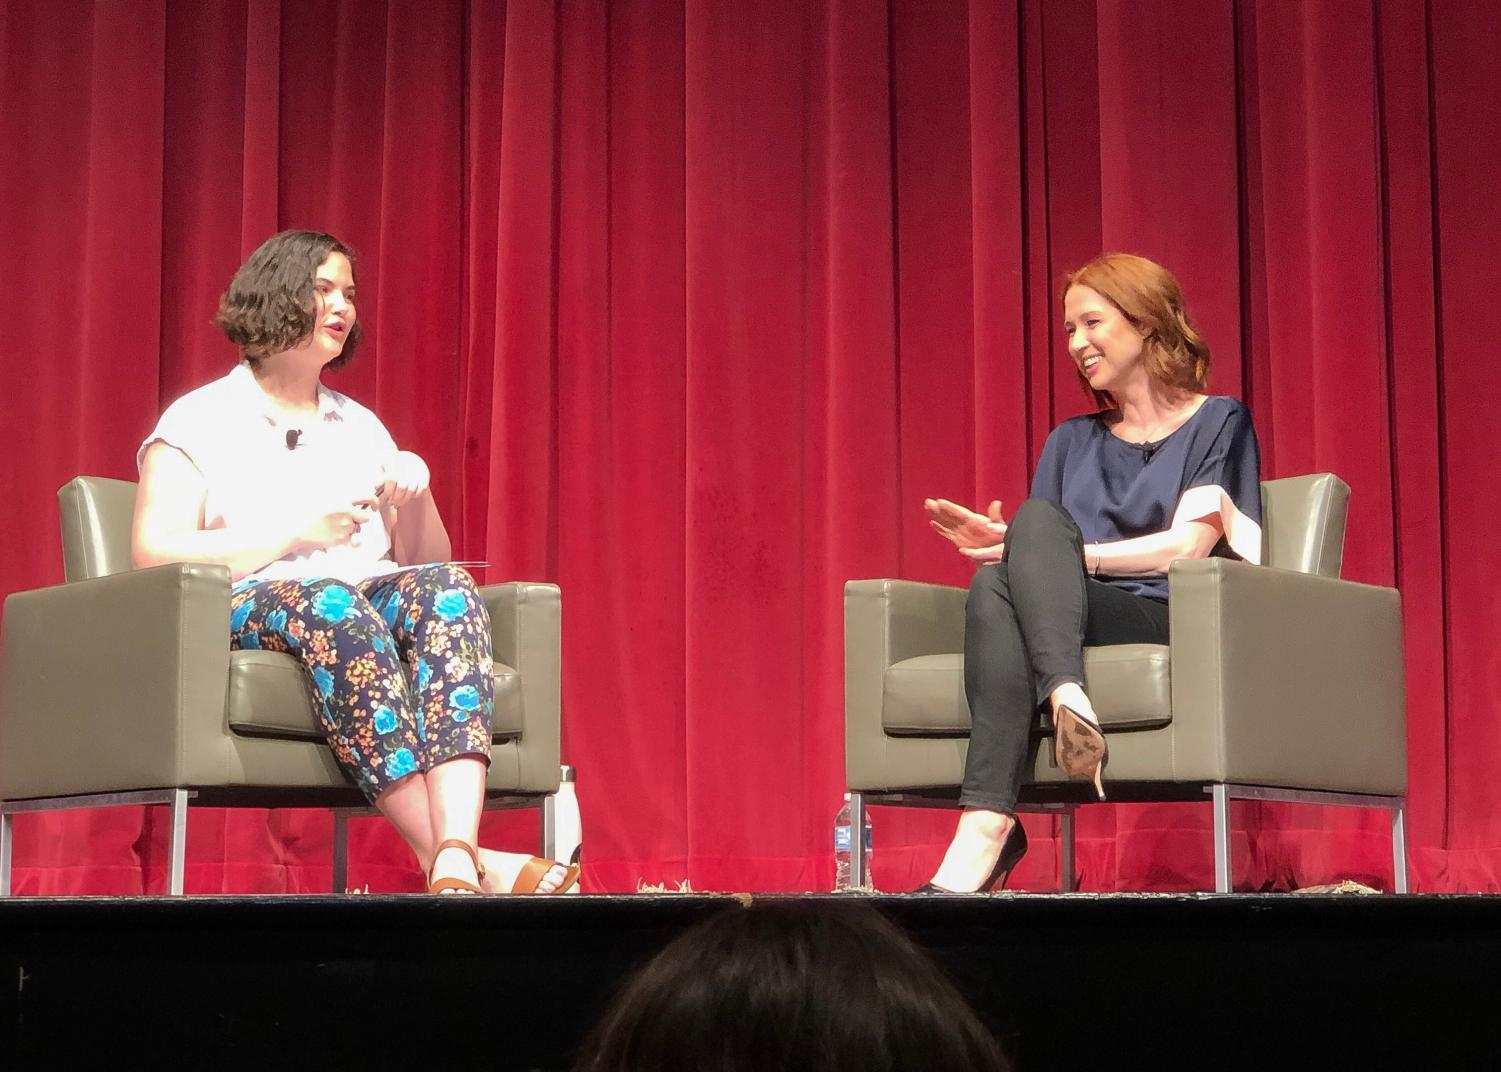 CAB President Kathryn Teaney, GSB '19, interviewed Ellie Kemper at the speaker event. (Colette Nolan/ The Fordham Ram)